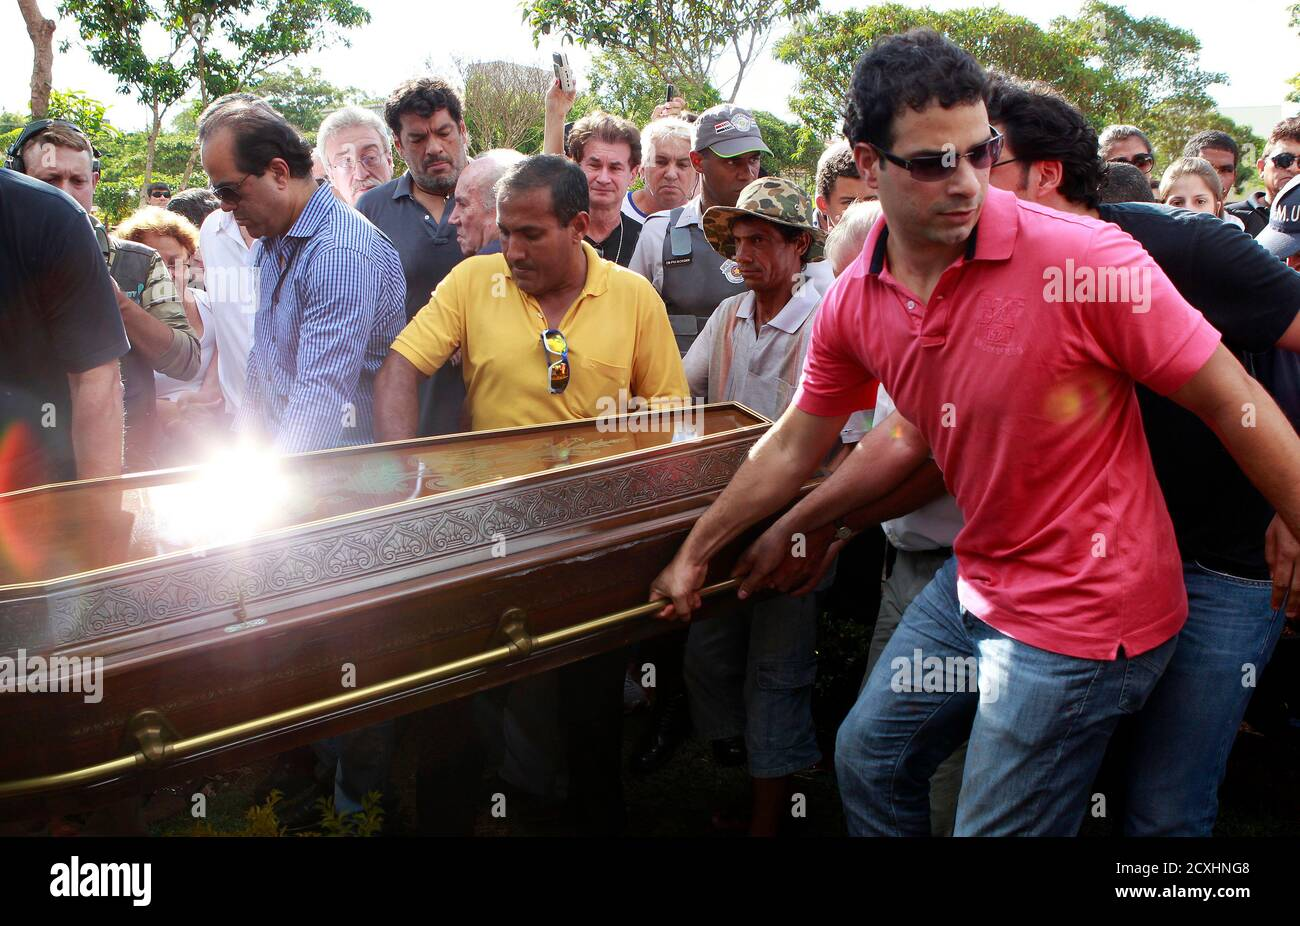 Gustavo Oliveira (R) carries the coffin of his father, Brazil's 1982 World Cup captain Socrates, during his funeral ceremony in Ribeirao Preto December 4, 2011. Socrates, the 'Golden Heel' renowned as one of the great playmakers of his generation, died in hospital on Sunday of septic shock at the age of 57, his doctors said in a statement.   REUTERS/Paulo Whitaker  (BRAZIL - Tags: SPORT SOCCER OBITUARY) Stock Photo